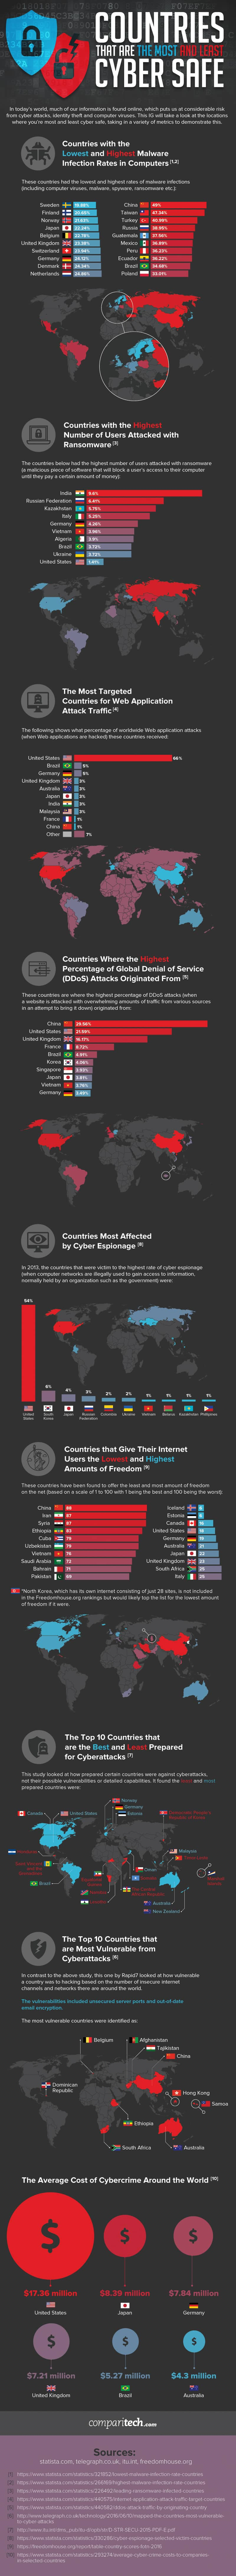 Cyber security statistics by country